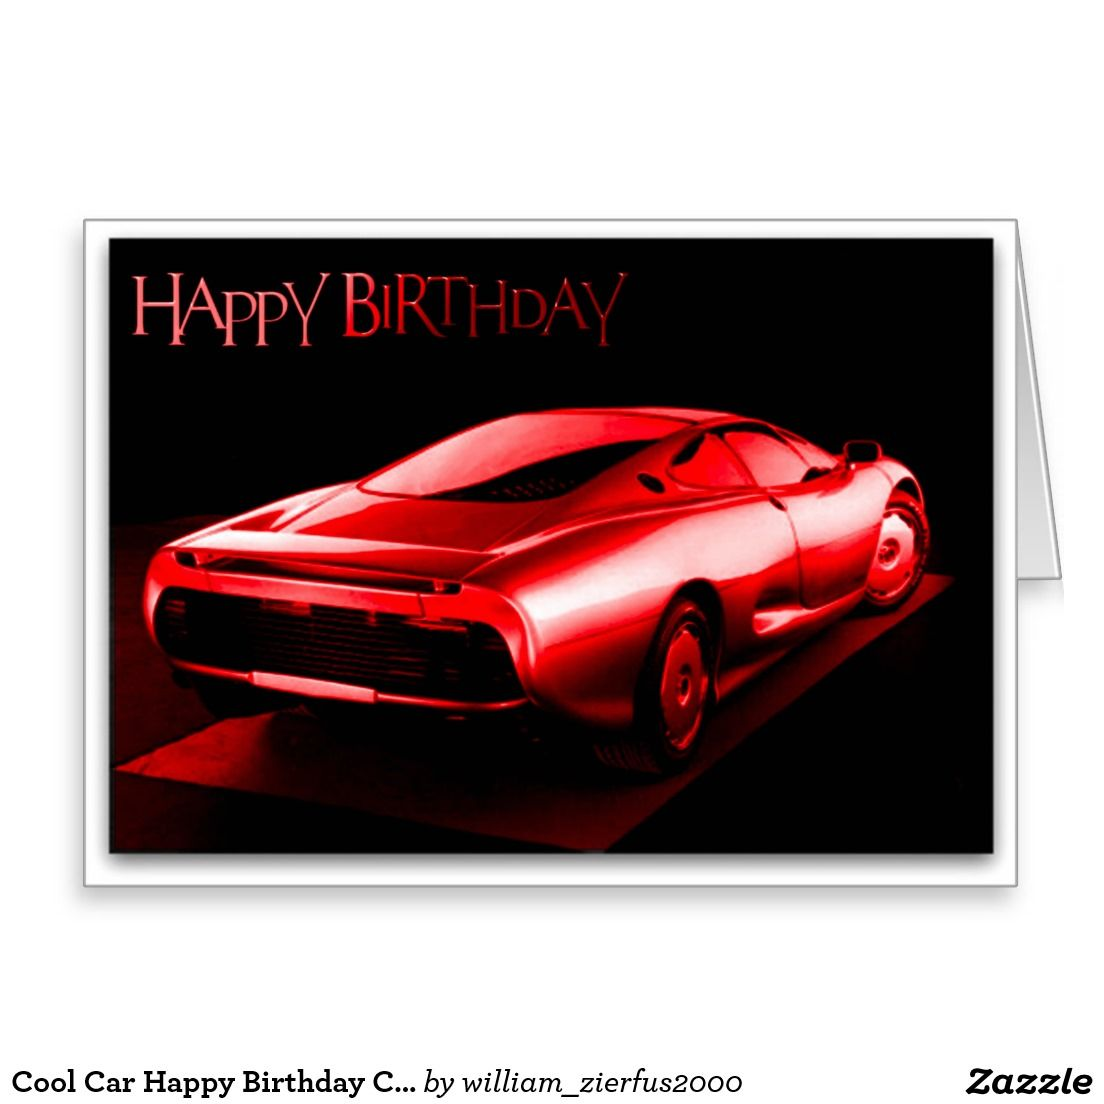 Cool Car Happy Birthday Card